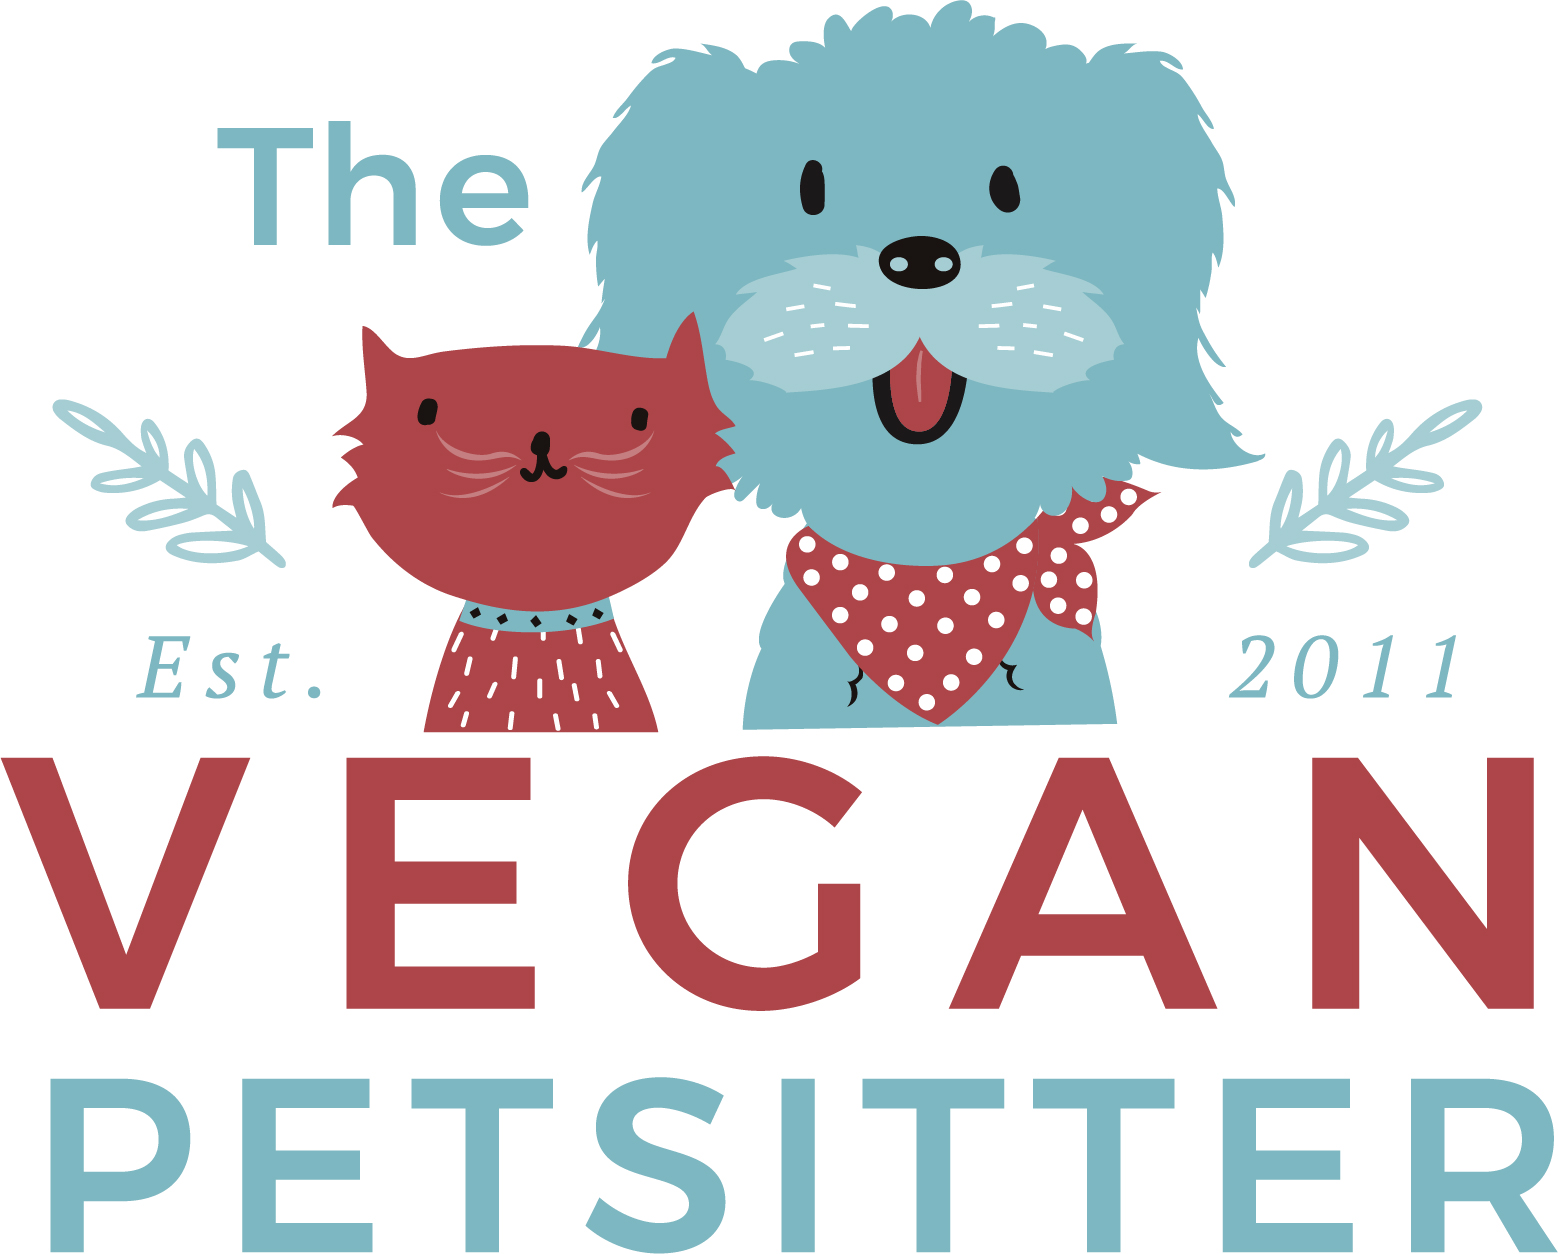 The Vegan Petsitter